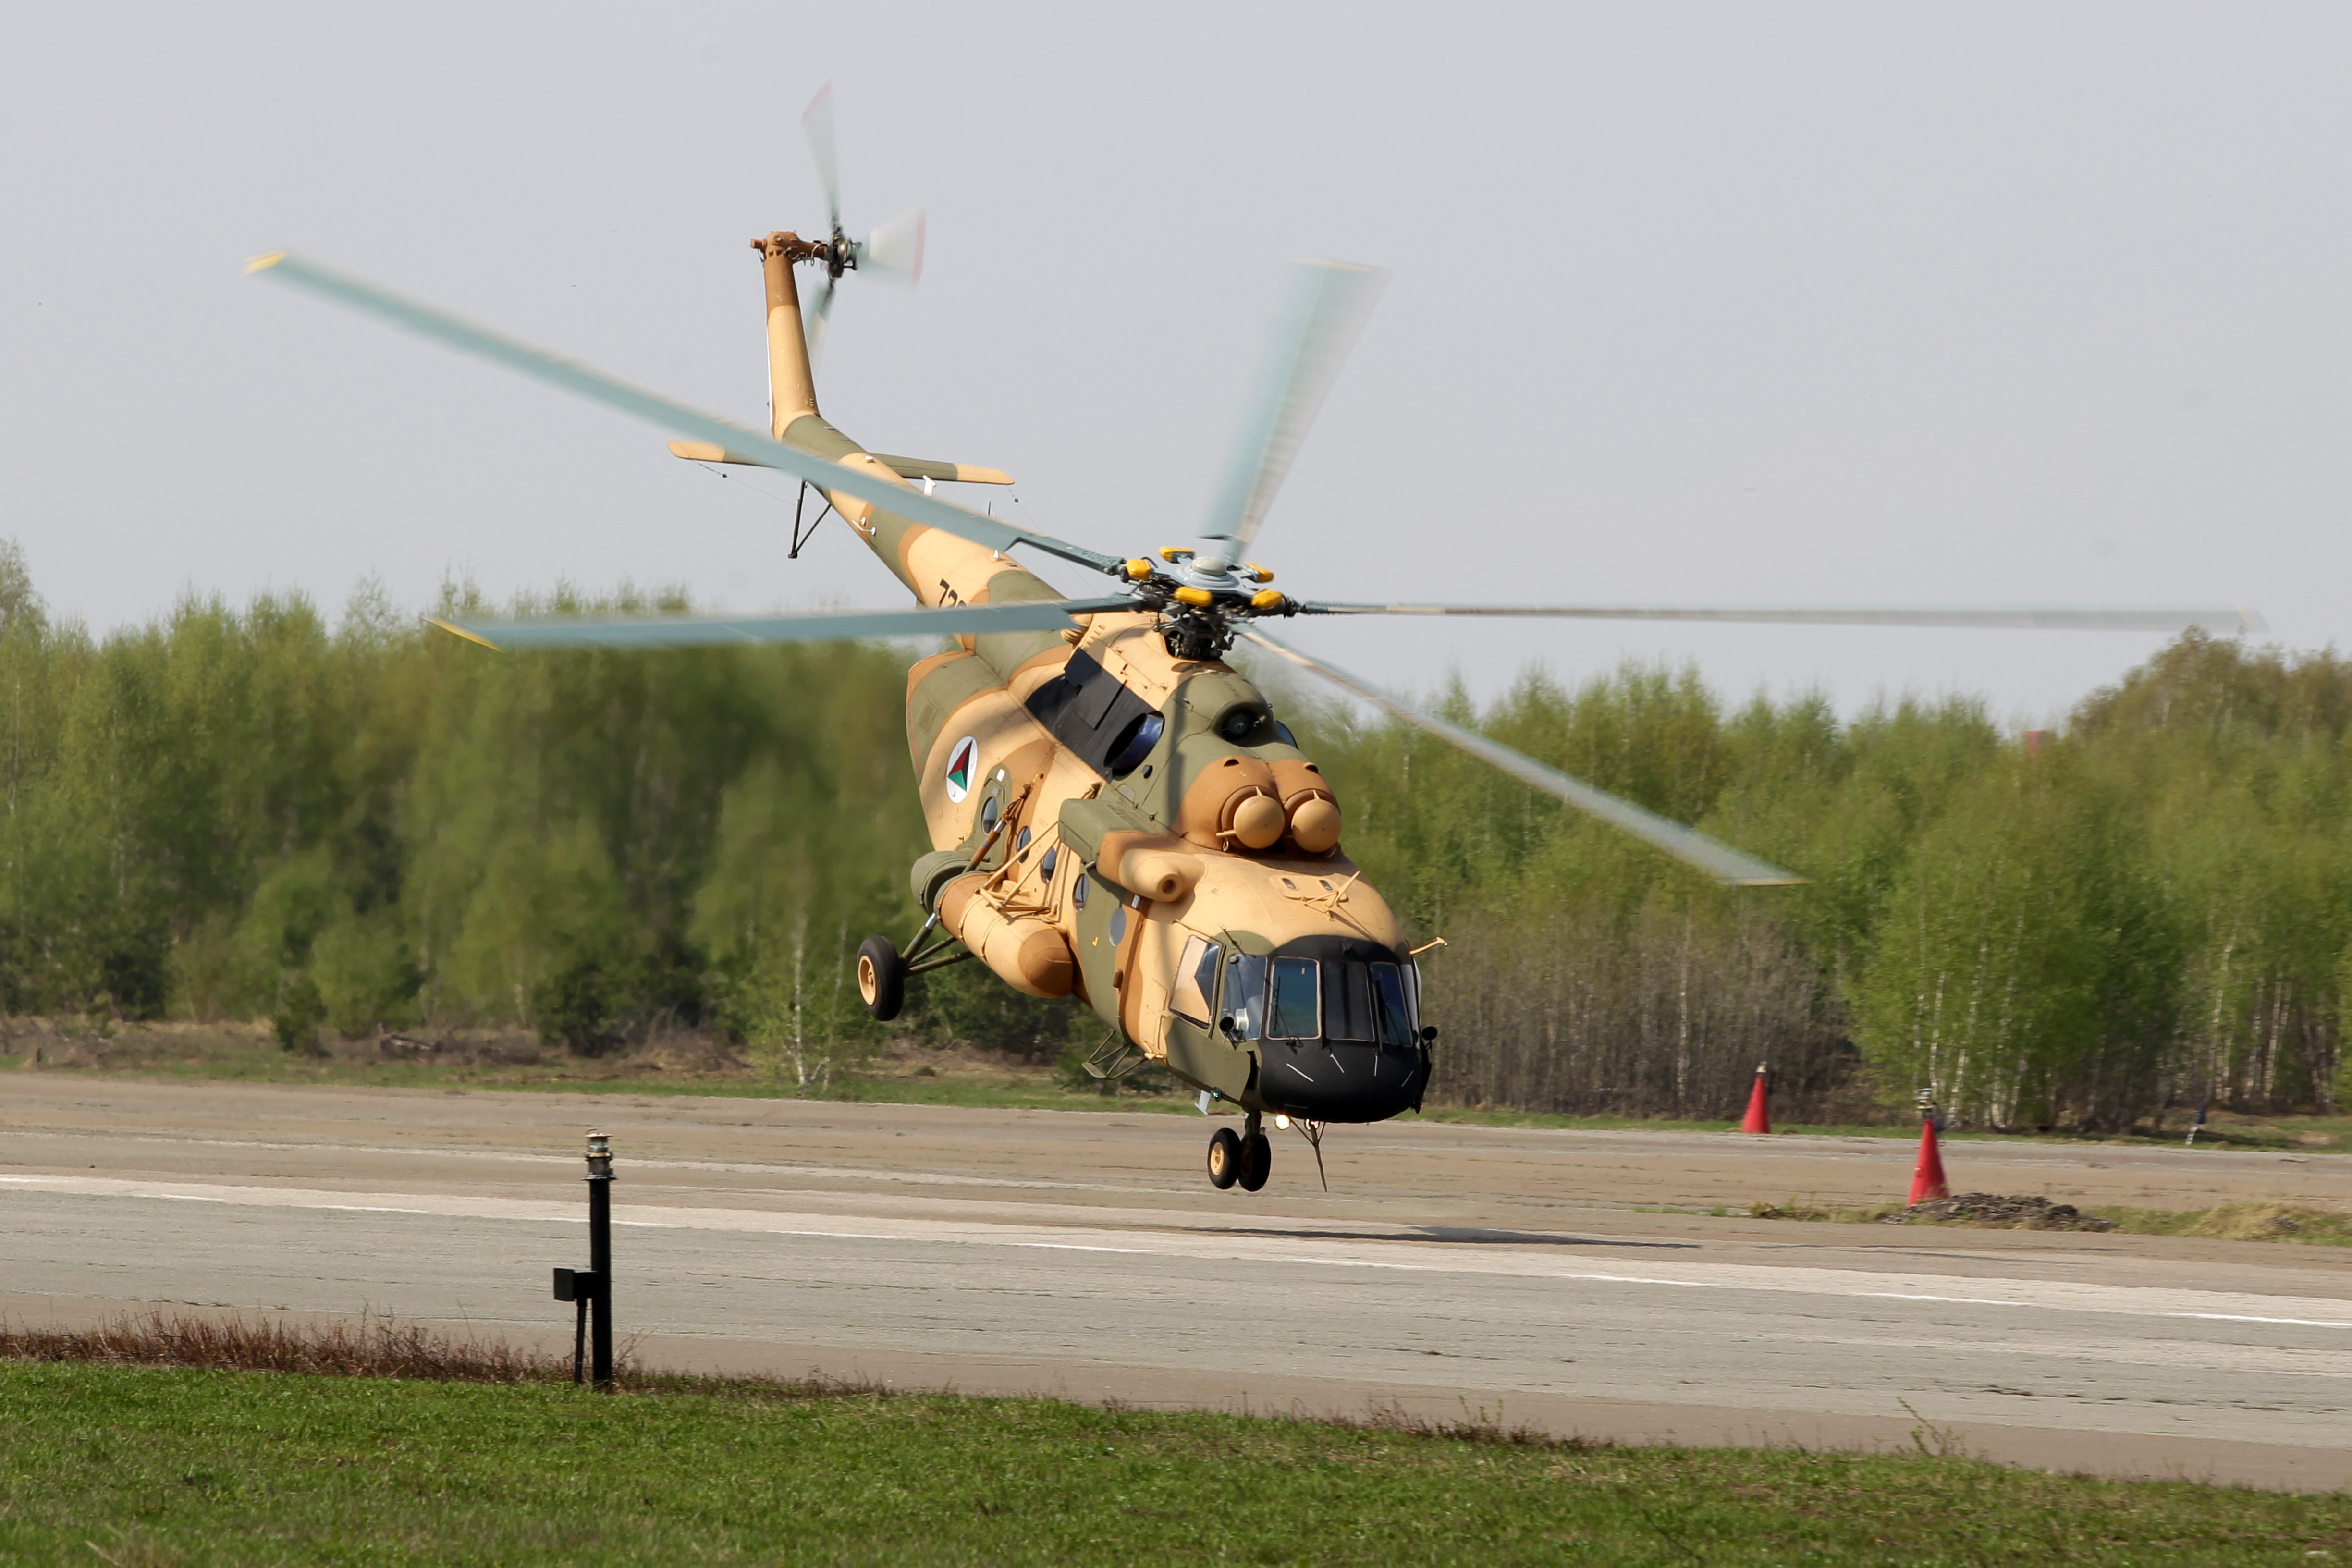 A Mi-17V-5 helicopter is demonstrated at the testing facility of the OAO Kazan Helicopter Plant, part of the Helicopters of Russia, a Russian helicopter building holding.